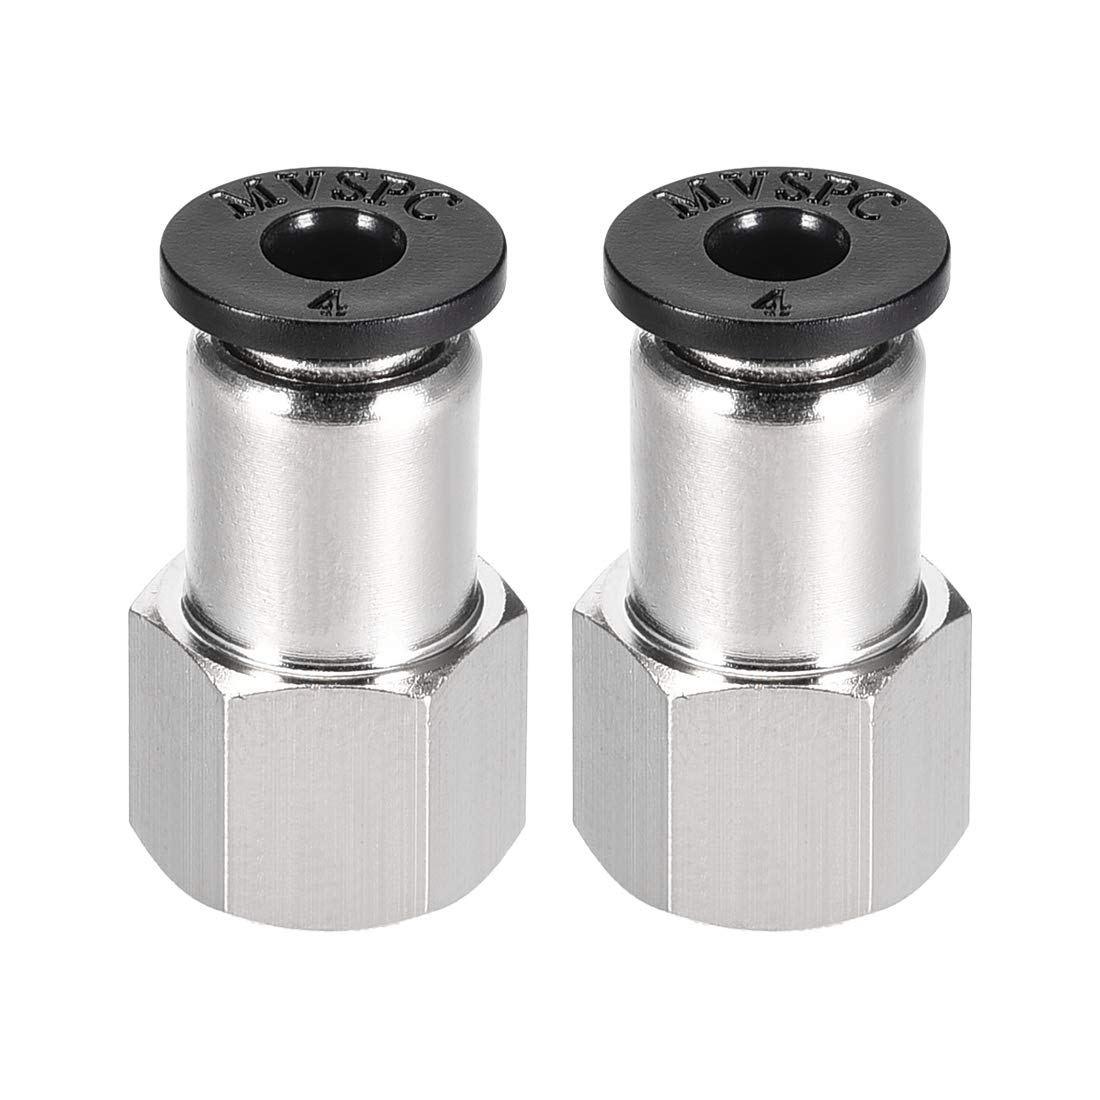 uxcell Push to Connect Tube Fitting Adapter 4mm Tube OD X 1//8 NPT Female Straight Pneumatic Connecter Connect Pipe Fitting 2pcs